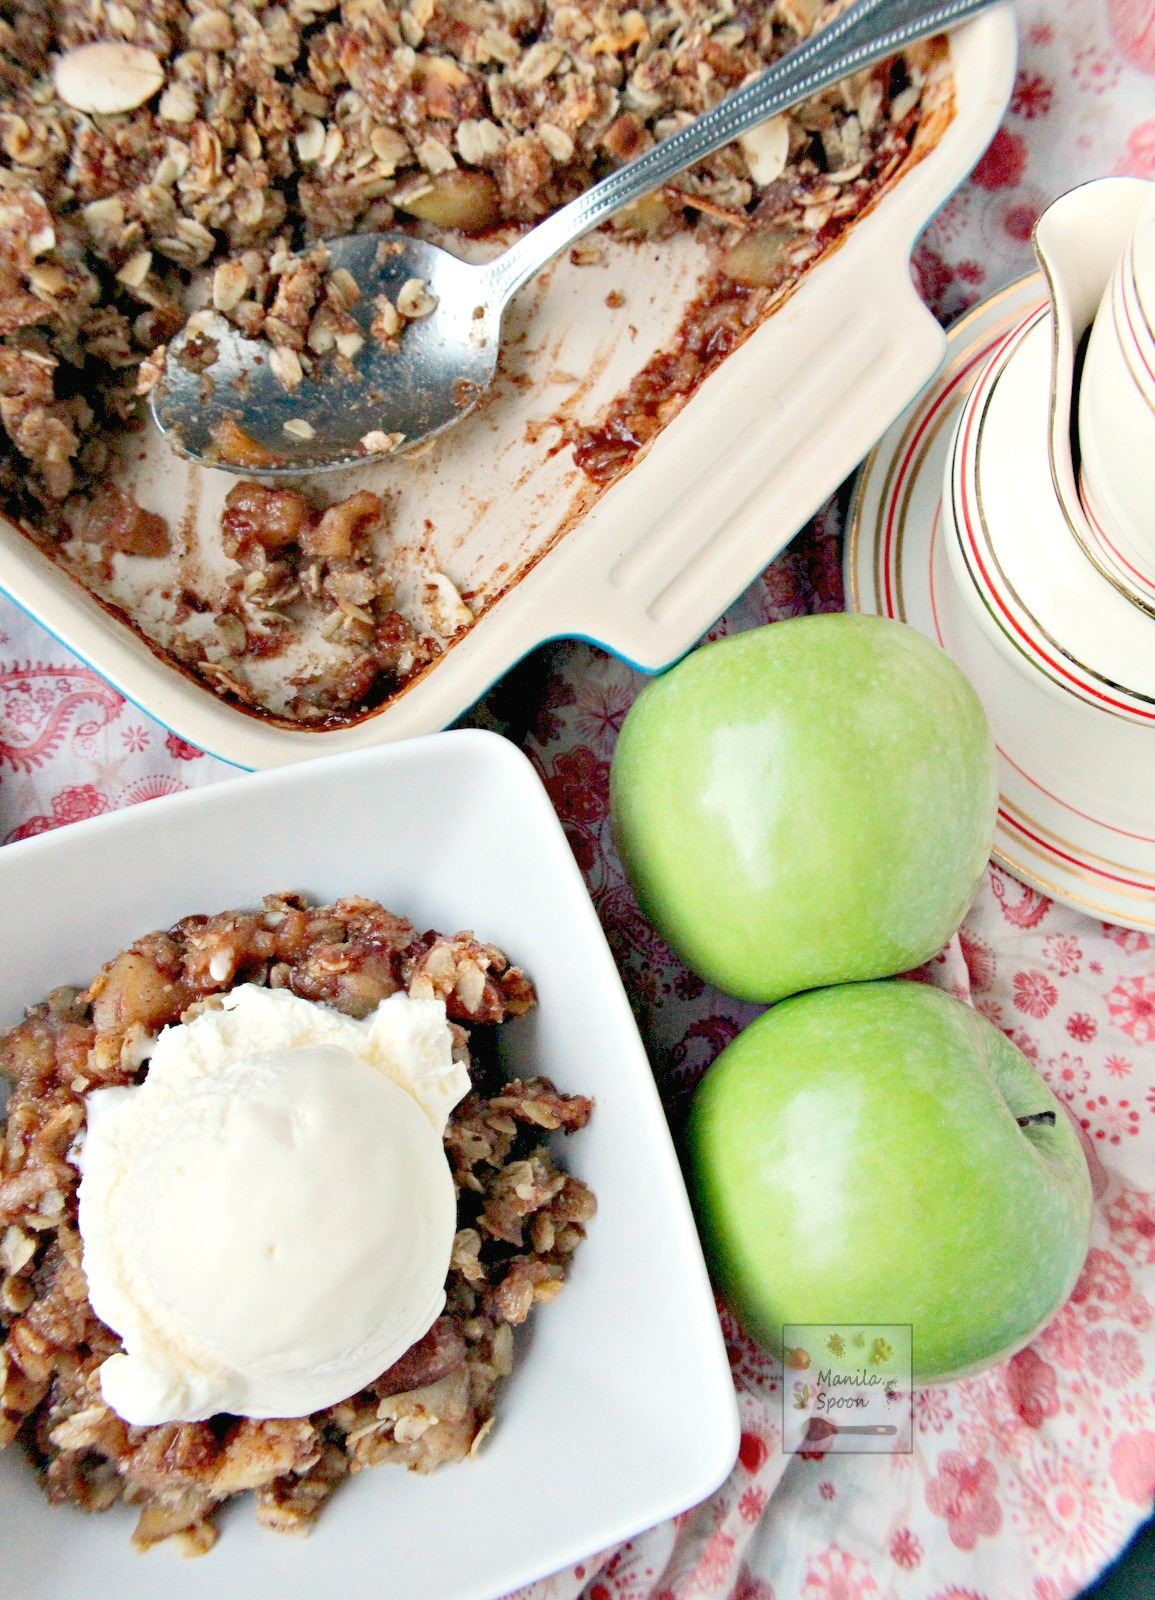 Sweet, fruity with a hint of lemony tang and perfectly spiced with cinnamon and nutmeg this Apple Crisp is simpy the best! Completely gluten-free, too.